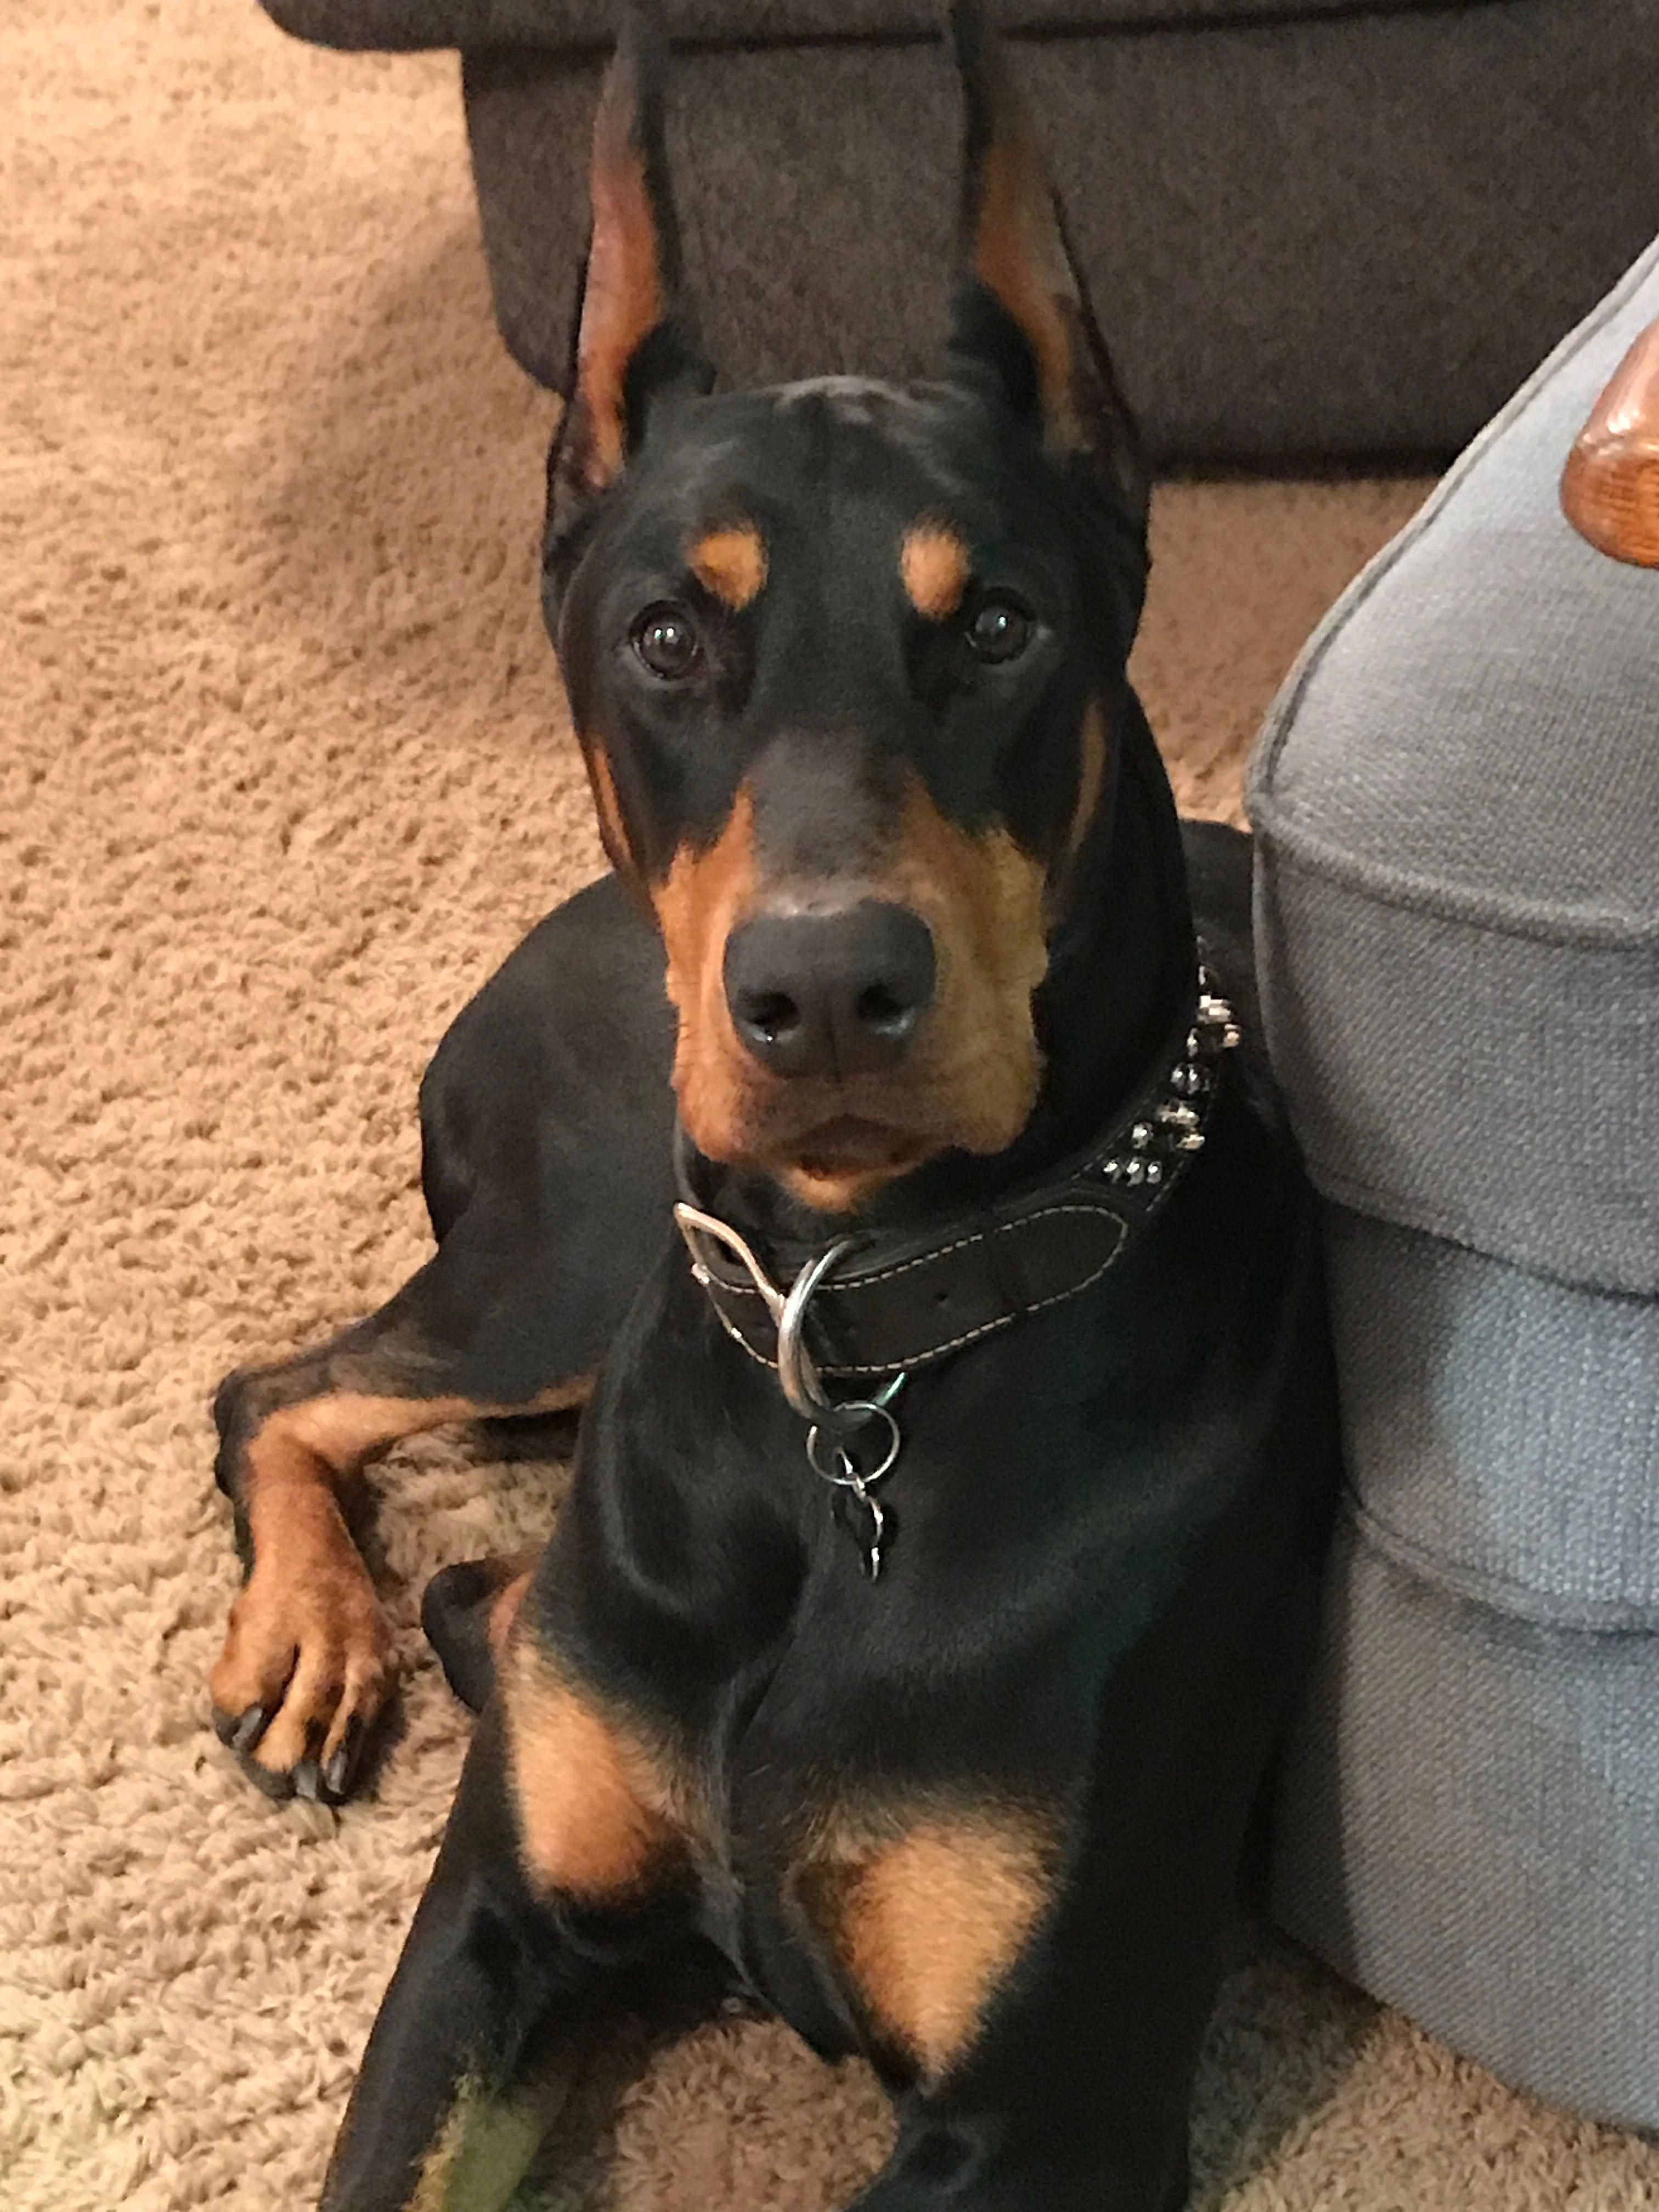 Some Of The Things We All Enjoy About The Fearless Dobermans Pup